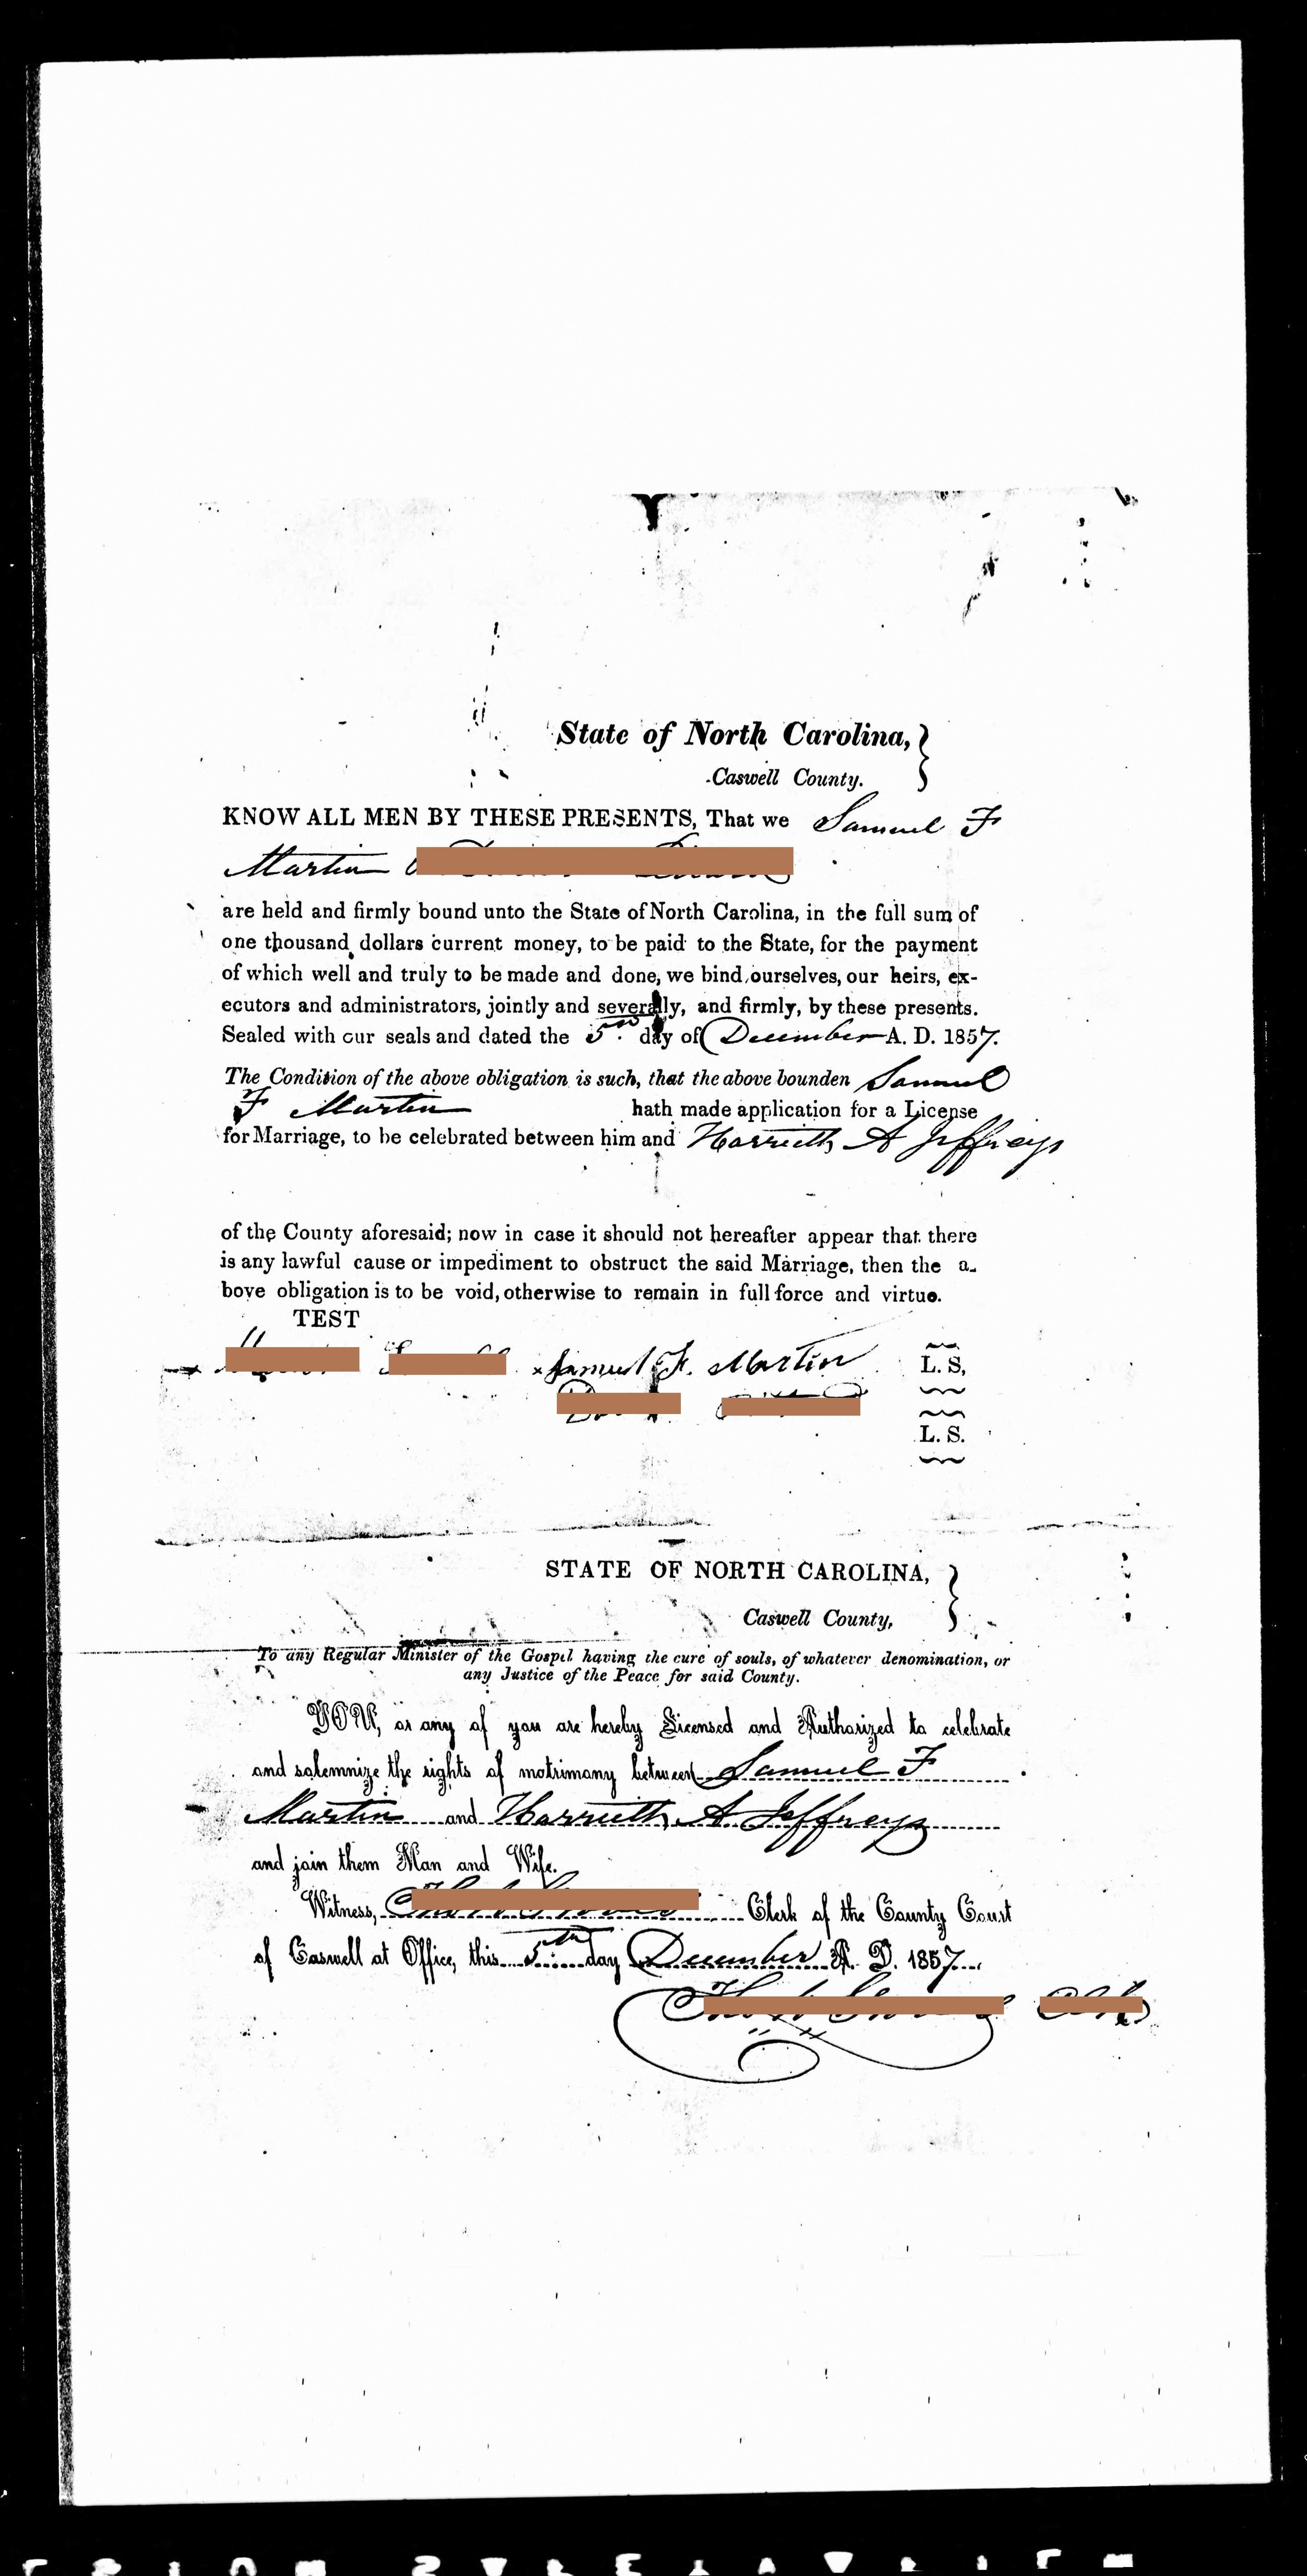 Generation 6:  Samuel married the younger sister of his first wife, after she died    (1857)   Redacted 1857 marriage certificate of Samuel F. Martin + Harriet Jeffries (4x great grandparents), html hex color codes sourced from photographs of my mother. Digital print, 36 x 18 in